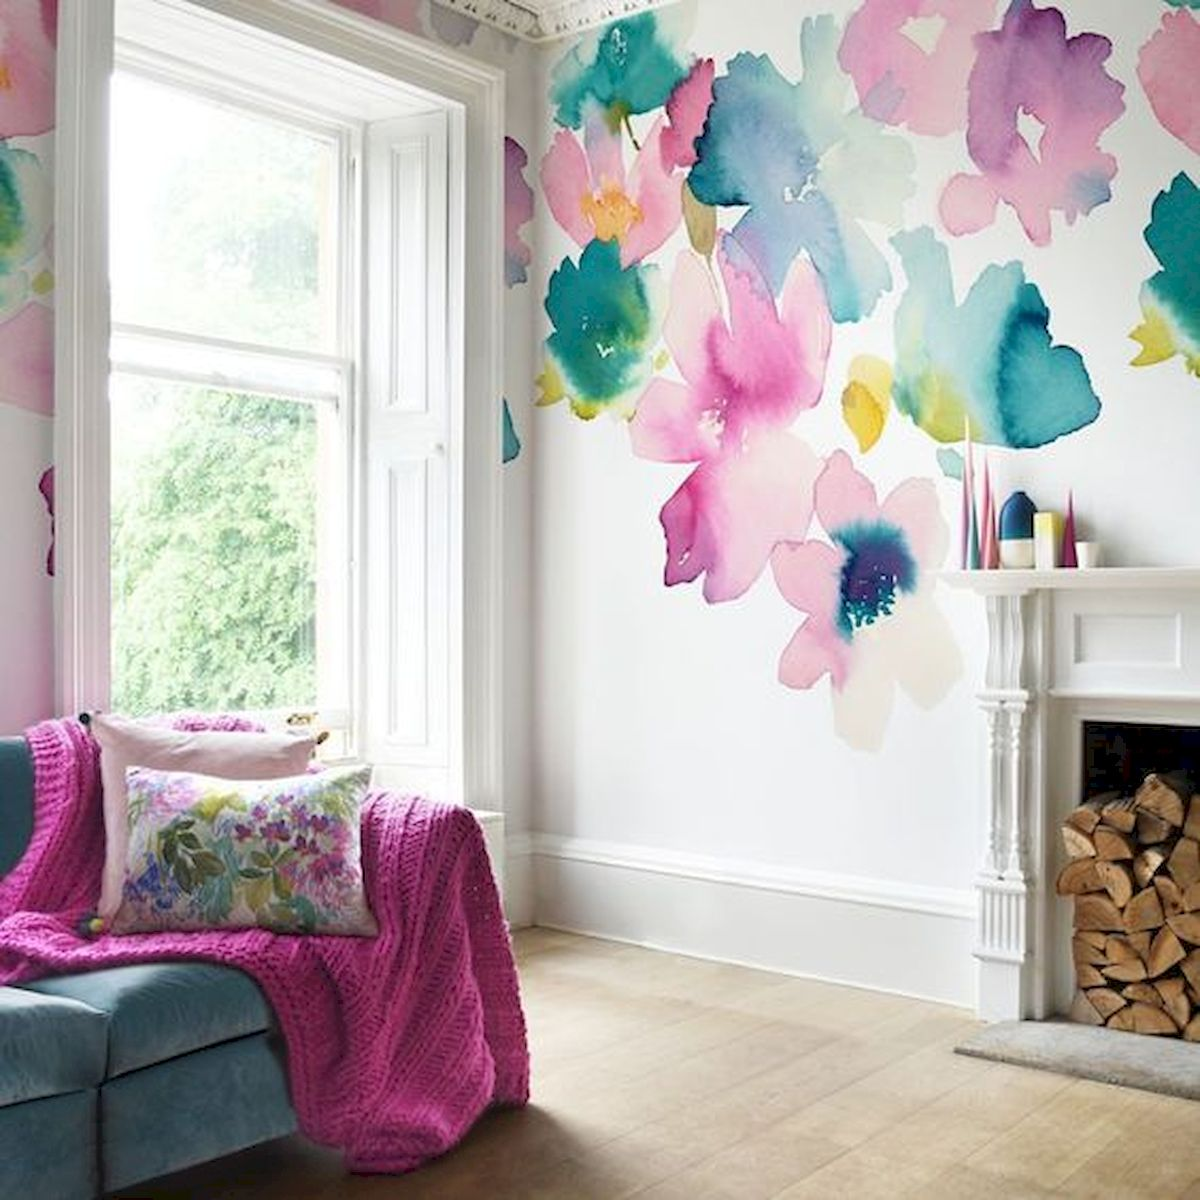 111 Awesome Art Decoration for Your Home (79)